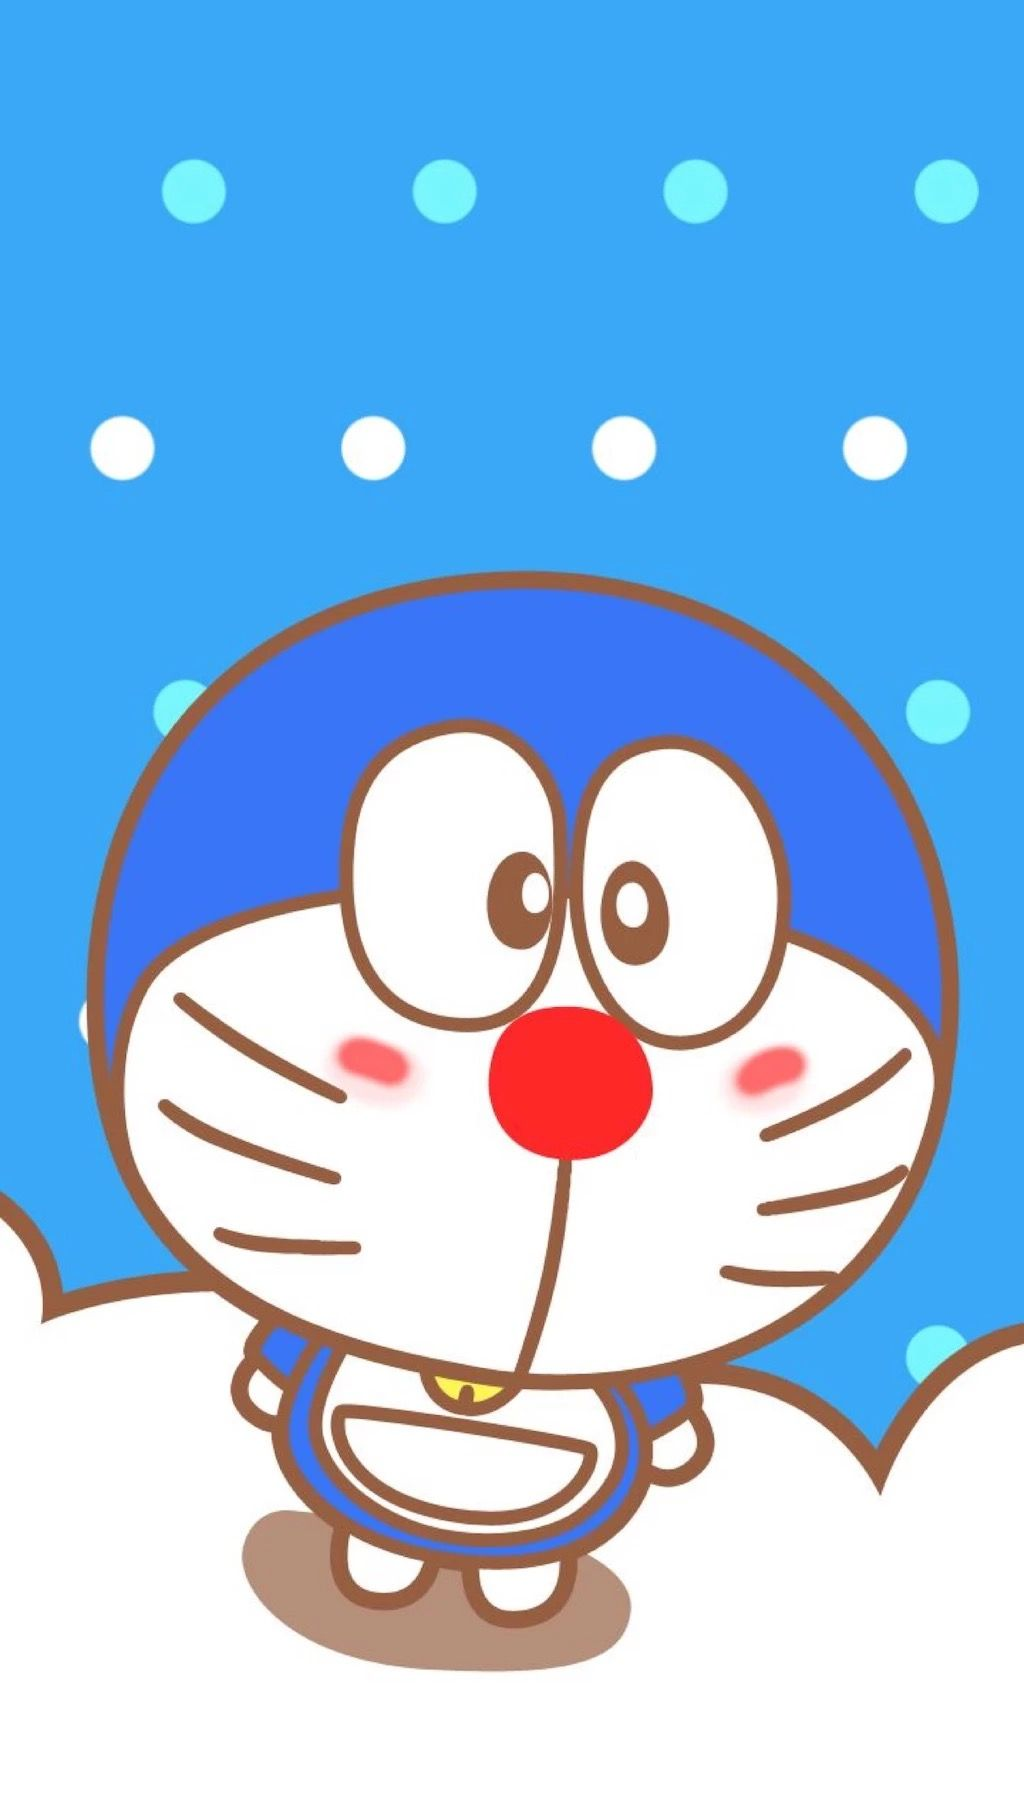 Best doraemon wallpaper image hd picturez doraemon pinterest best doraemon wallpaper image hd picturez voltagebd